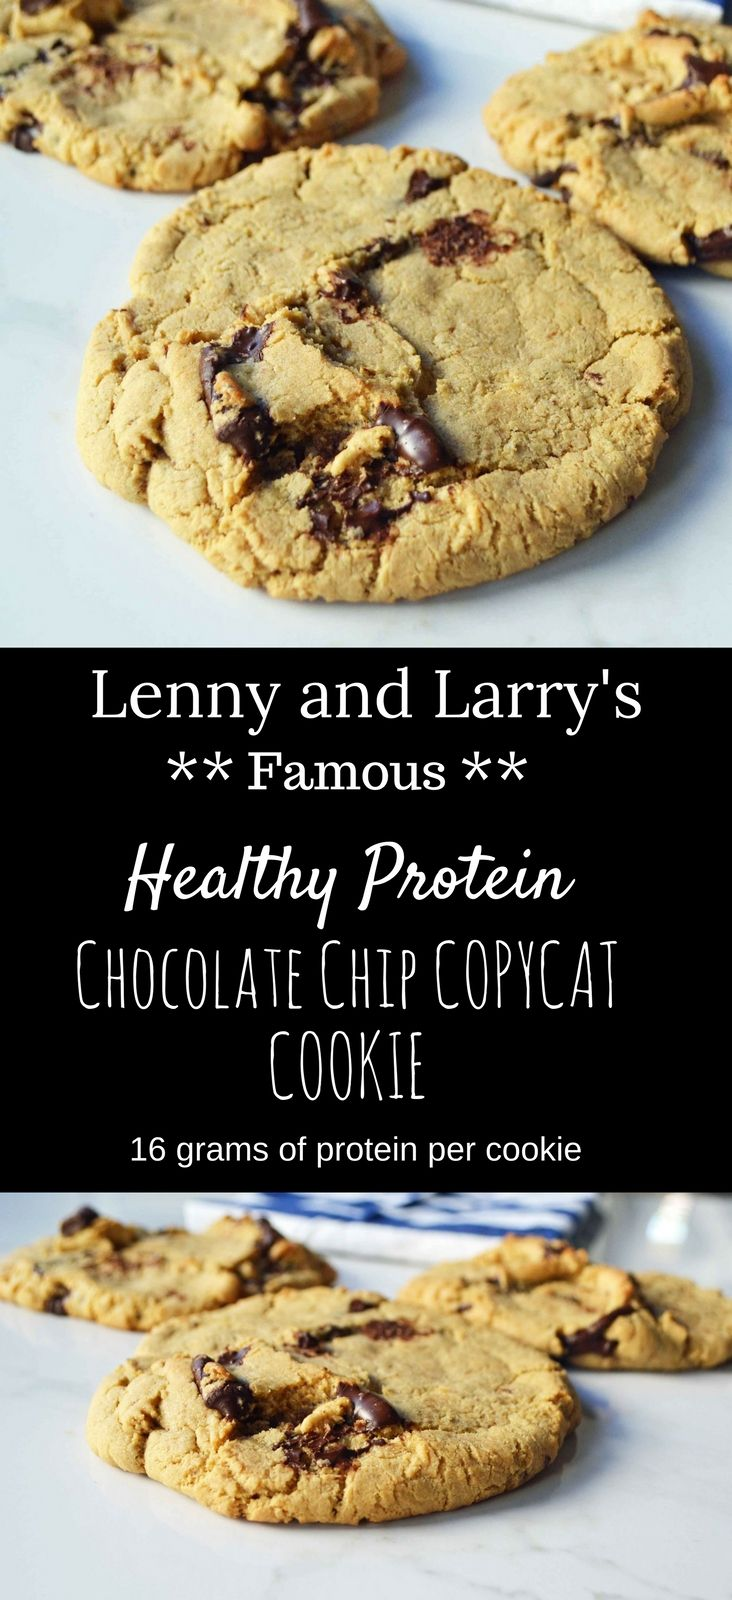 Lenny and Larry's Famous Complete Protein Copycat Cookies by Modern Honey. 16 grams of protein, vegan, and less sugar makes these one healthy cookie. This is way better than drinking a protein shake.